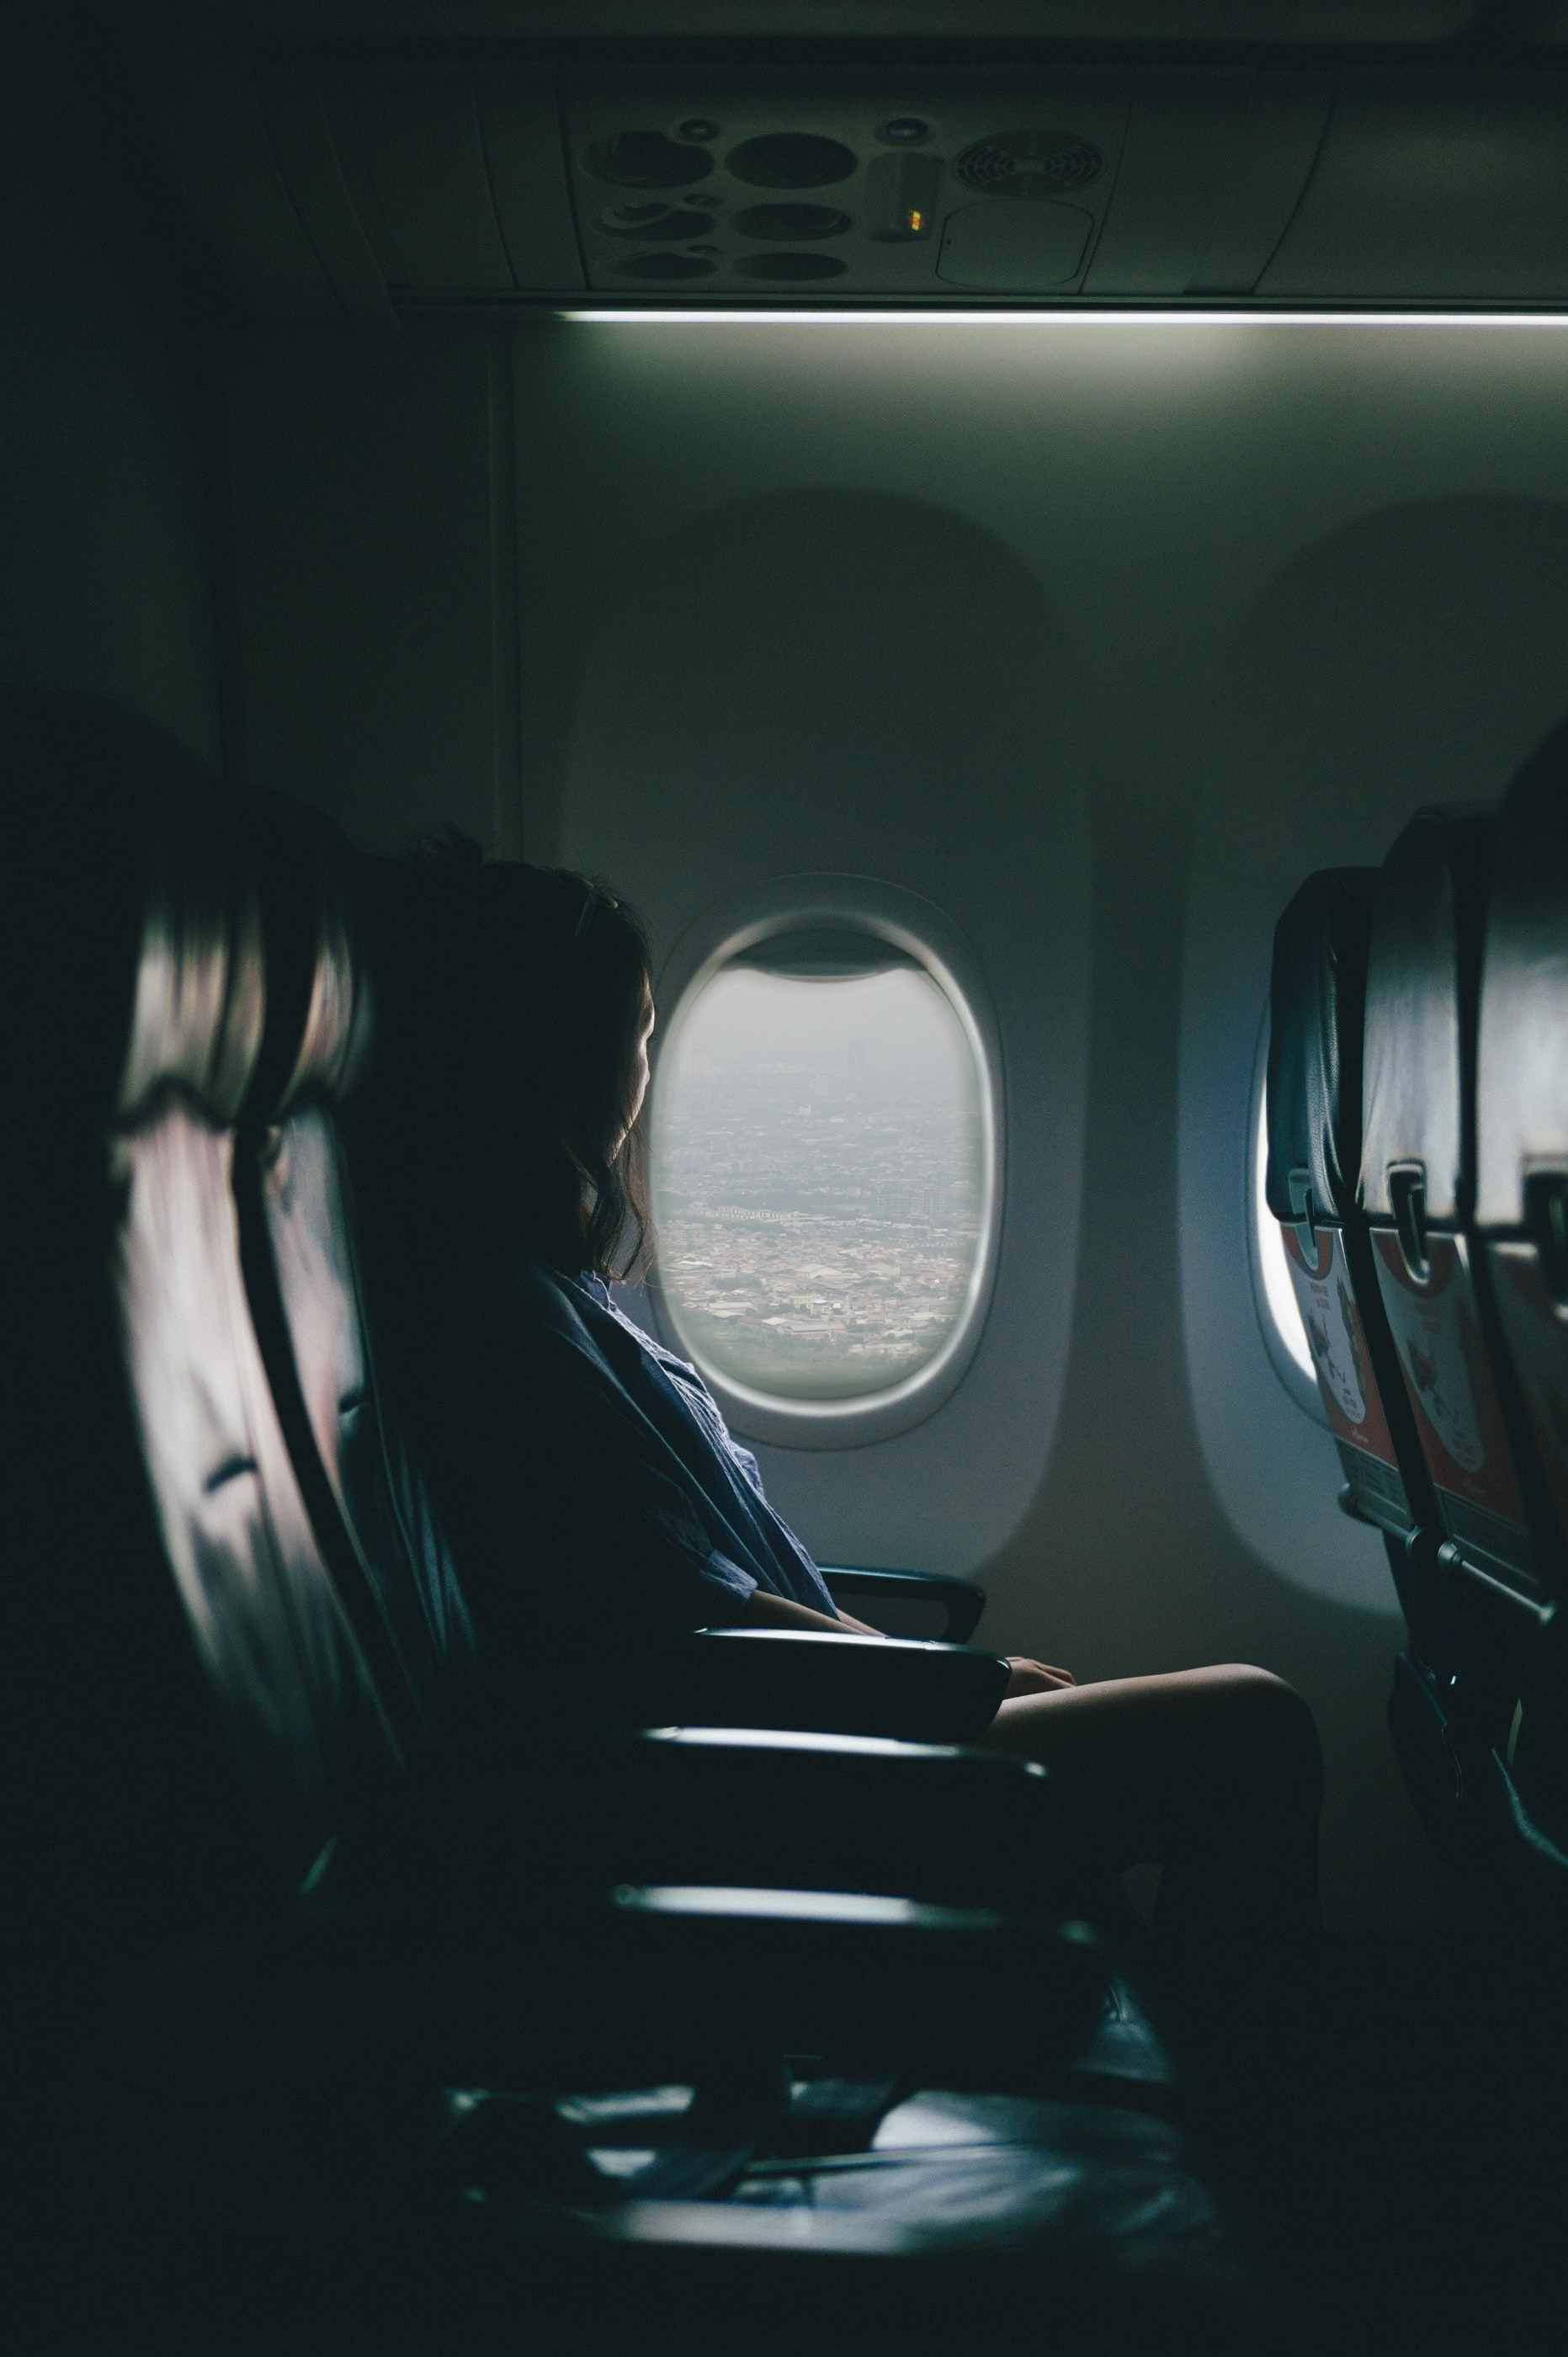 A woman looking out of an airplane window while flying over a city